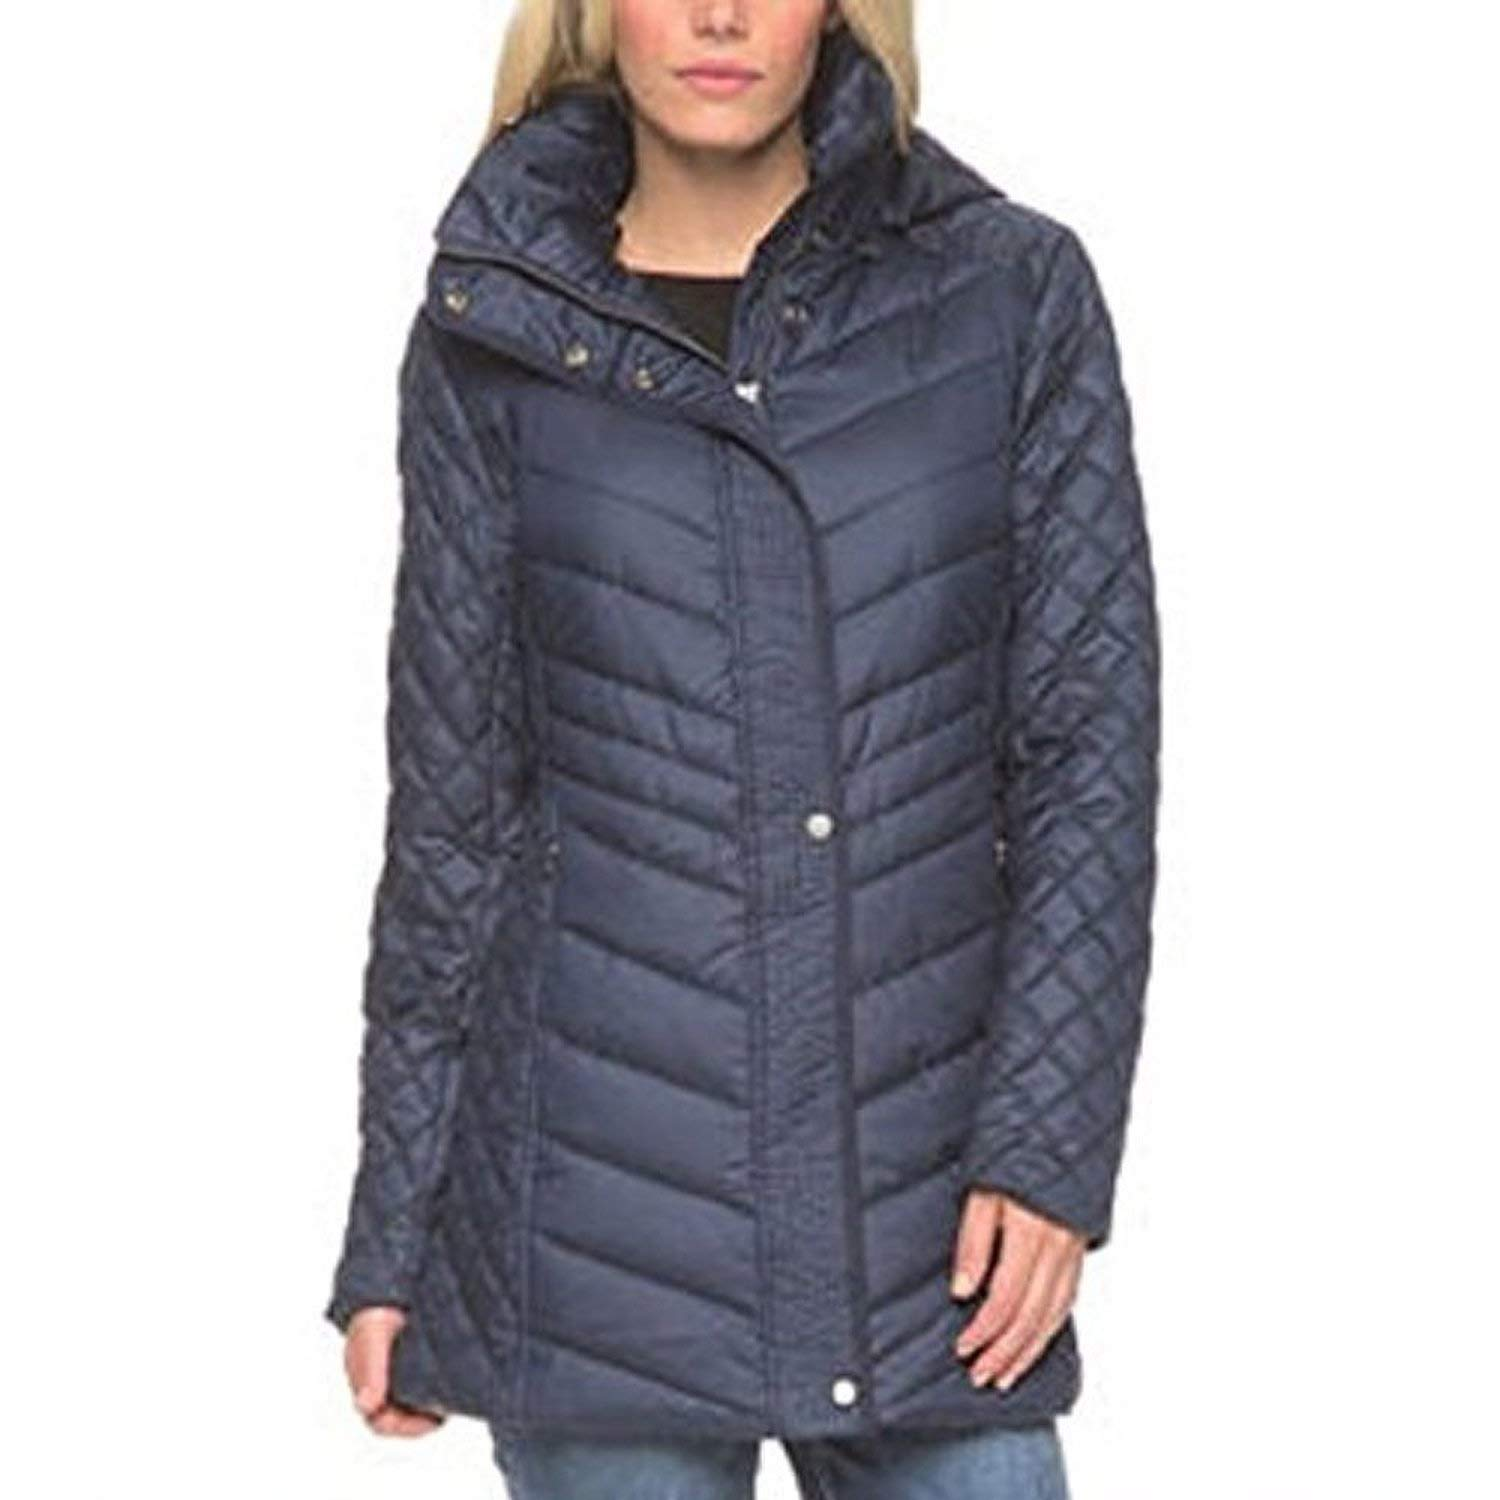 Cheap Quilted Navy Jacket Women Find Quilted Navy Jacket Women